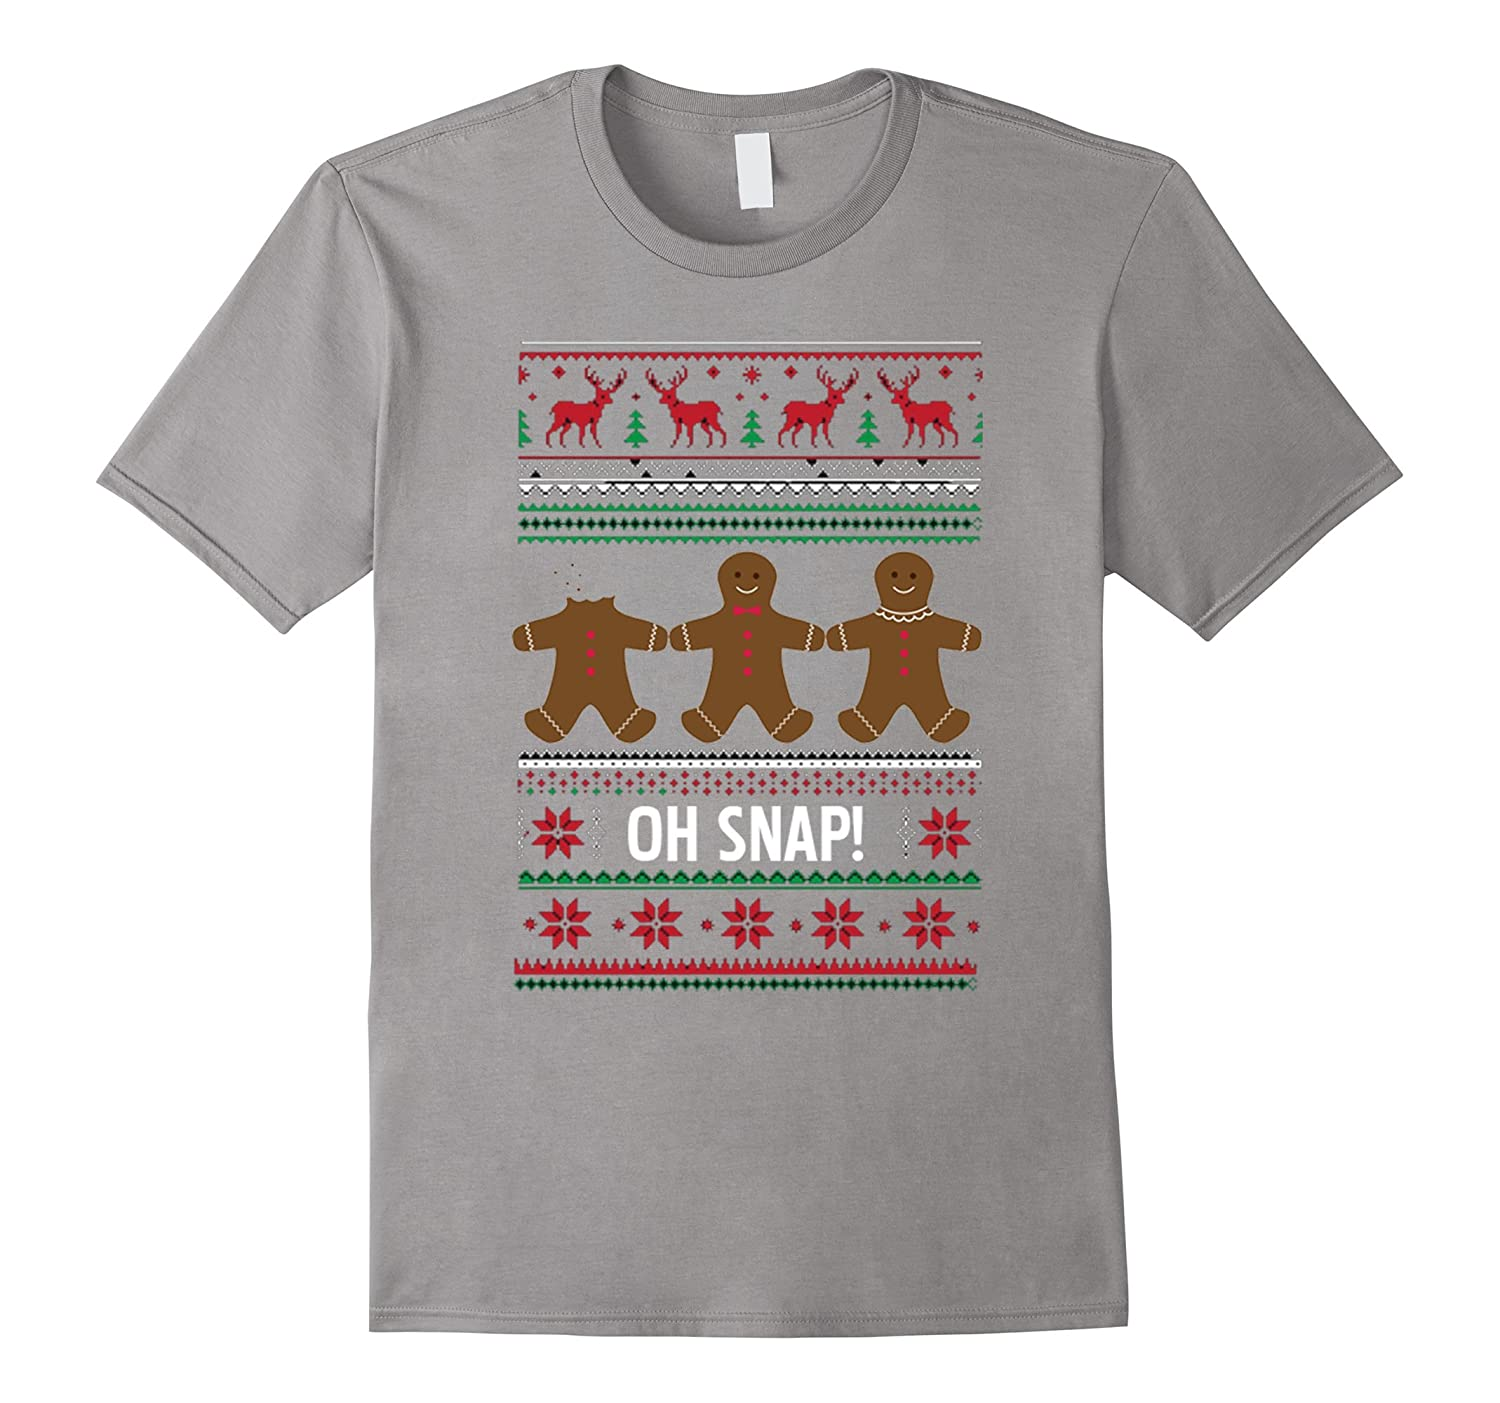 OH SNAP Gingerbread Men Ugly Christmas Sweater Style T-Shirt-ANZ ...